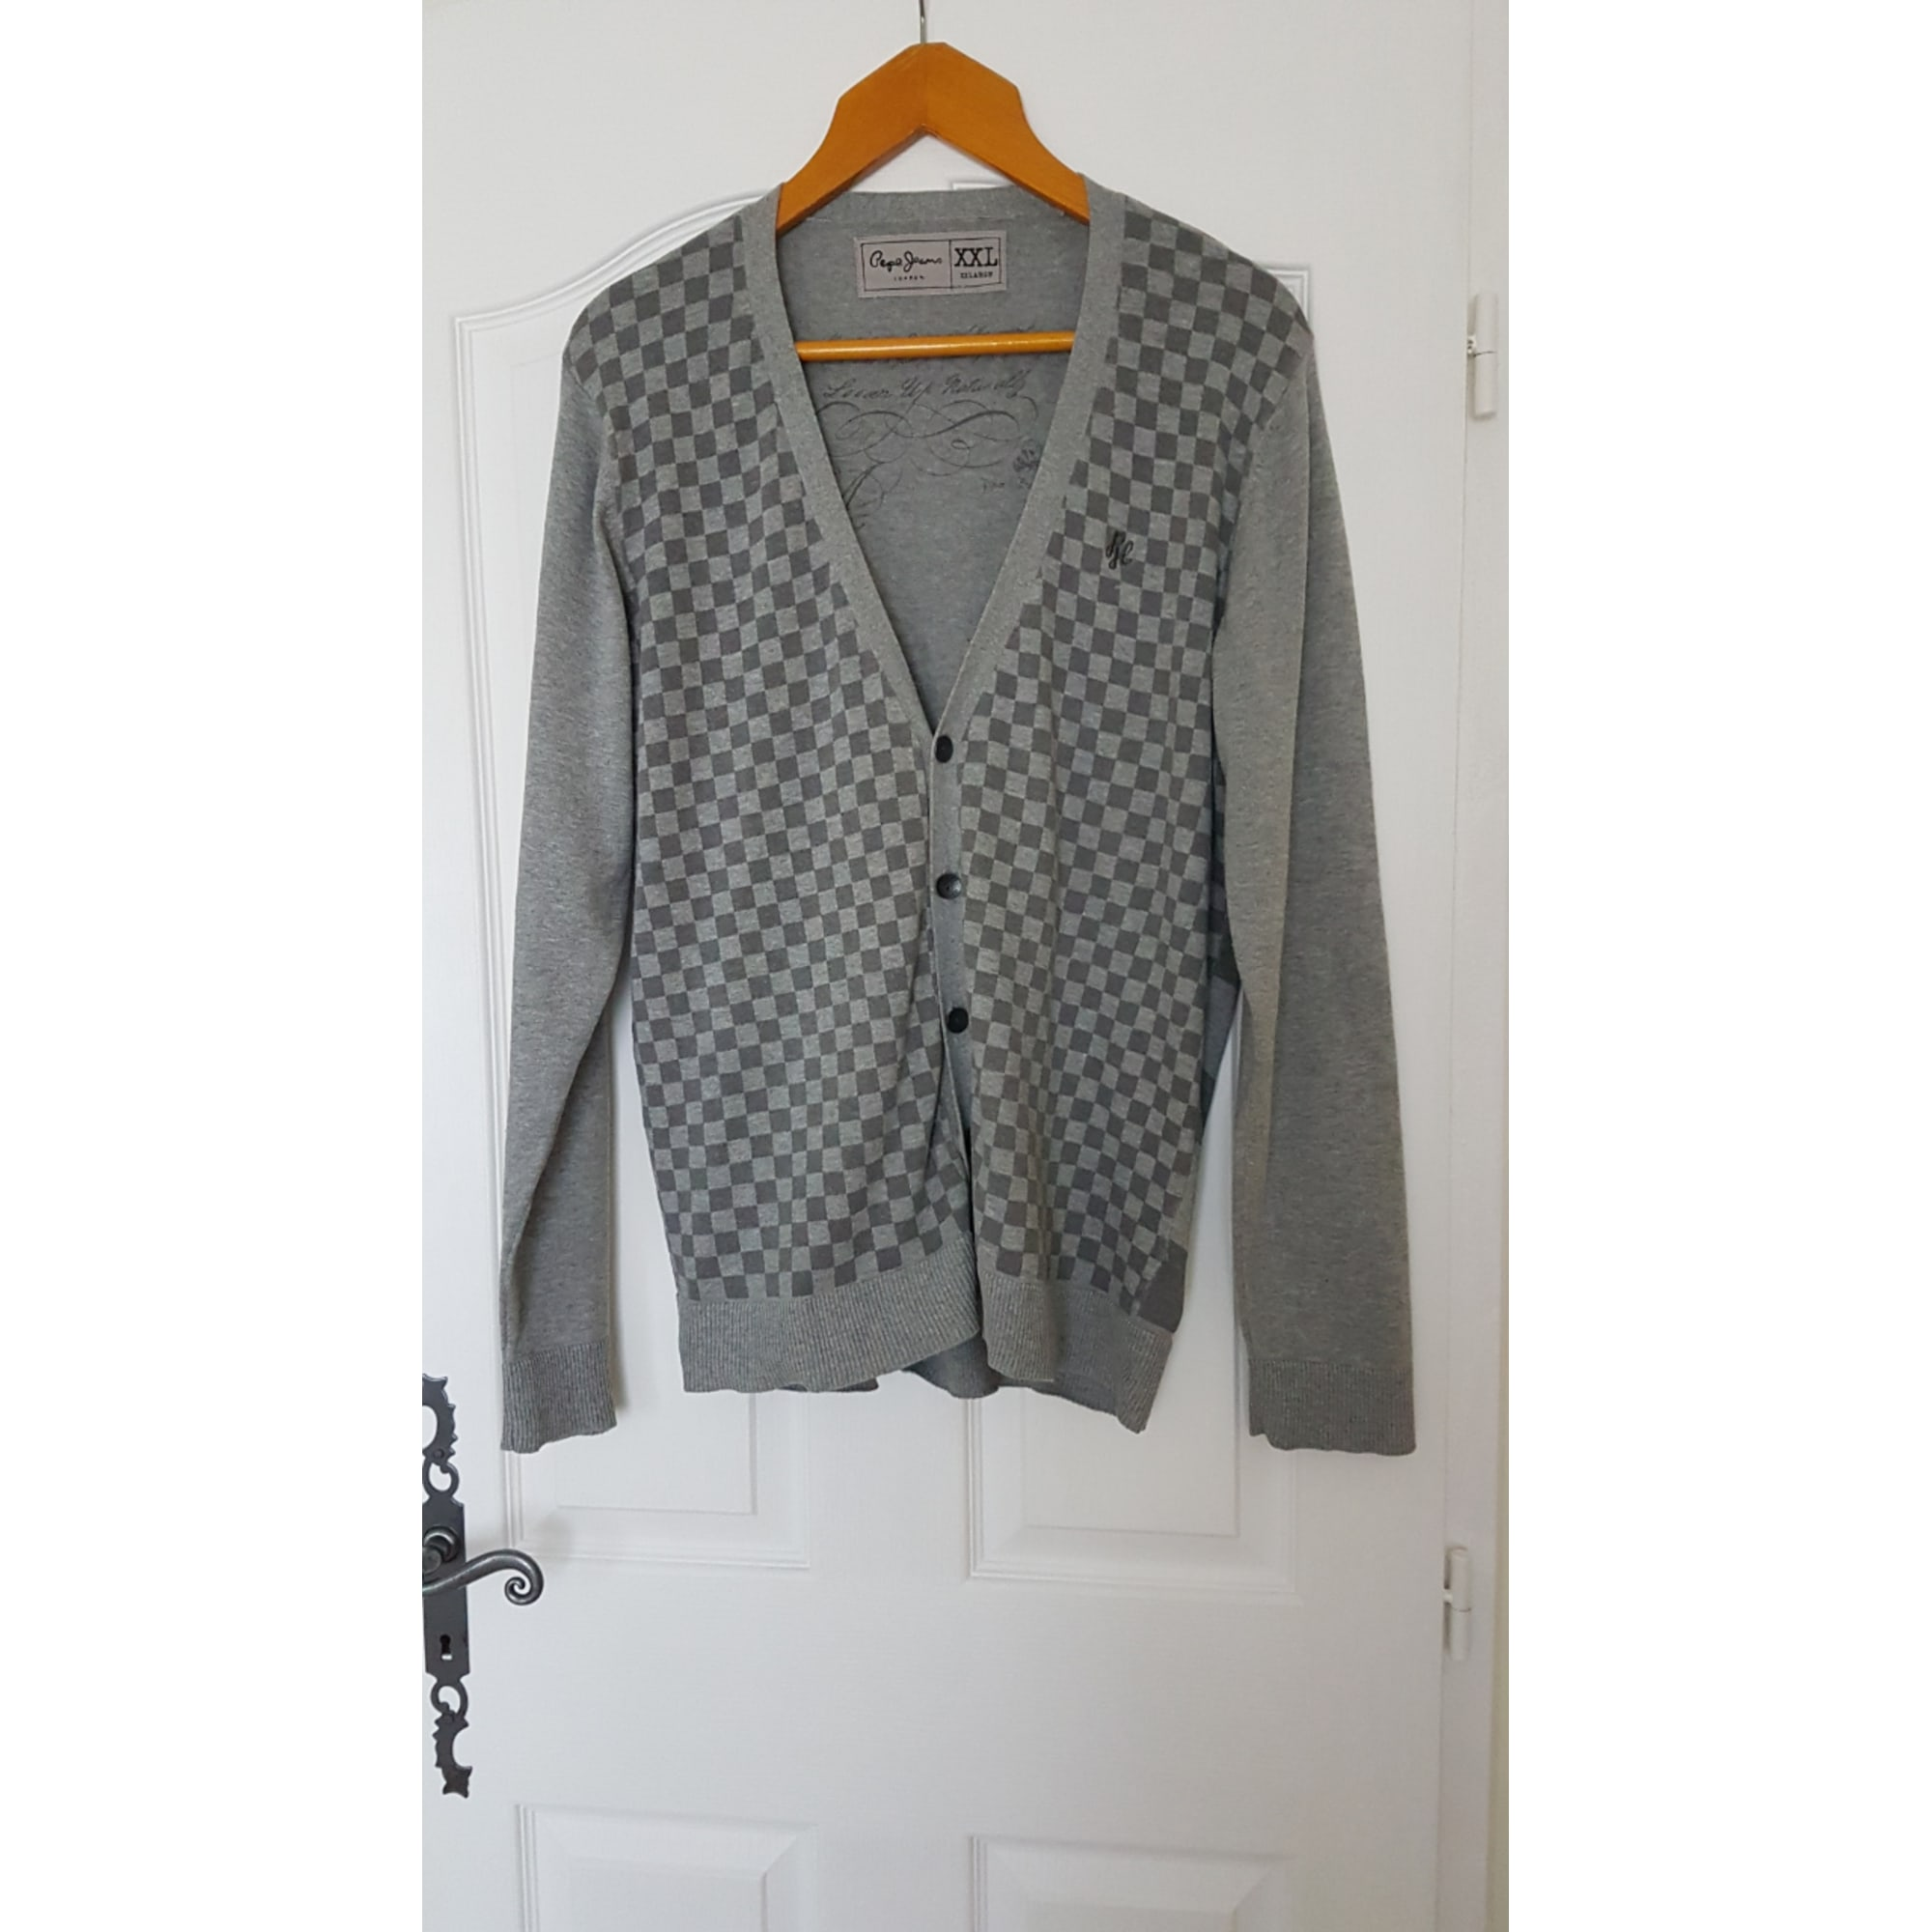 Gilet, cardigan PEPE JEANS Gris, anthracite